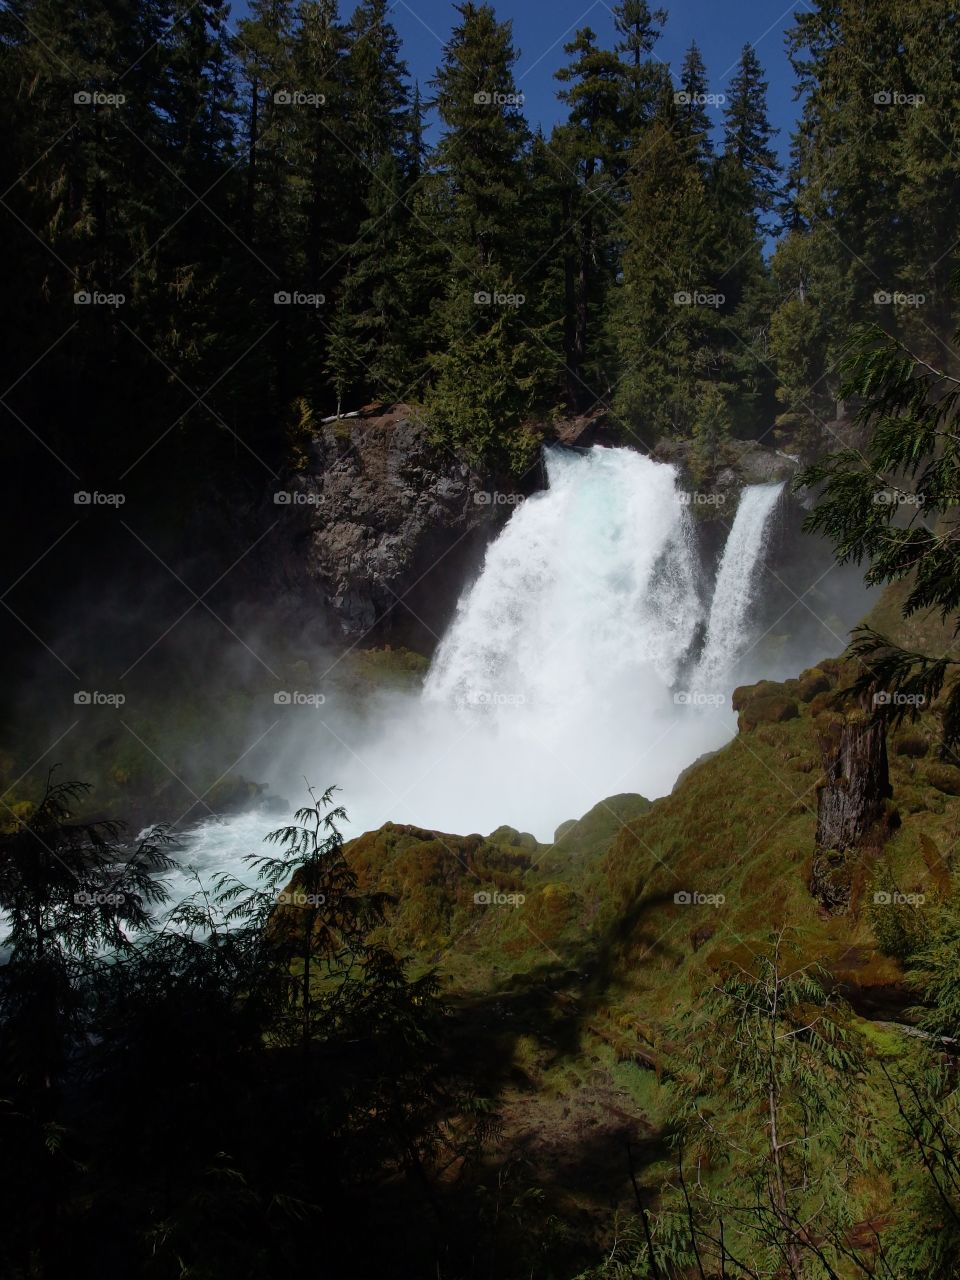 The beautiful waters of Sahalie Falls on the McKenzie River rushing over a rugged cliff into its canyon covered in bright green moss, trees, and tree stumps on a sunny spring day in Western Oregon.